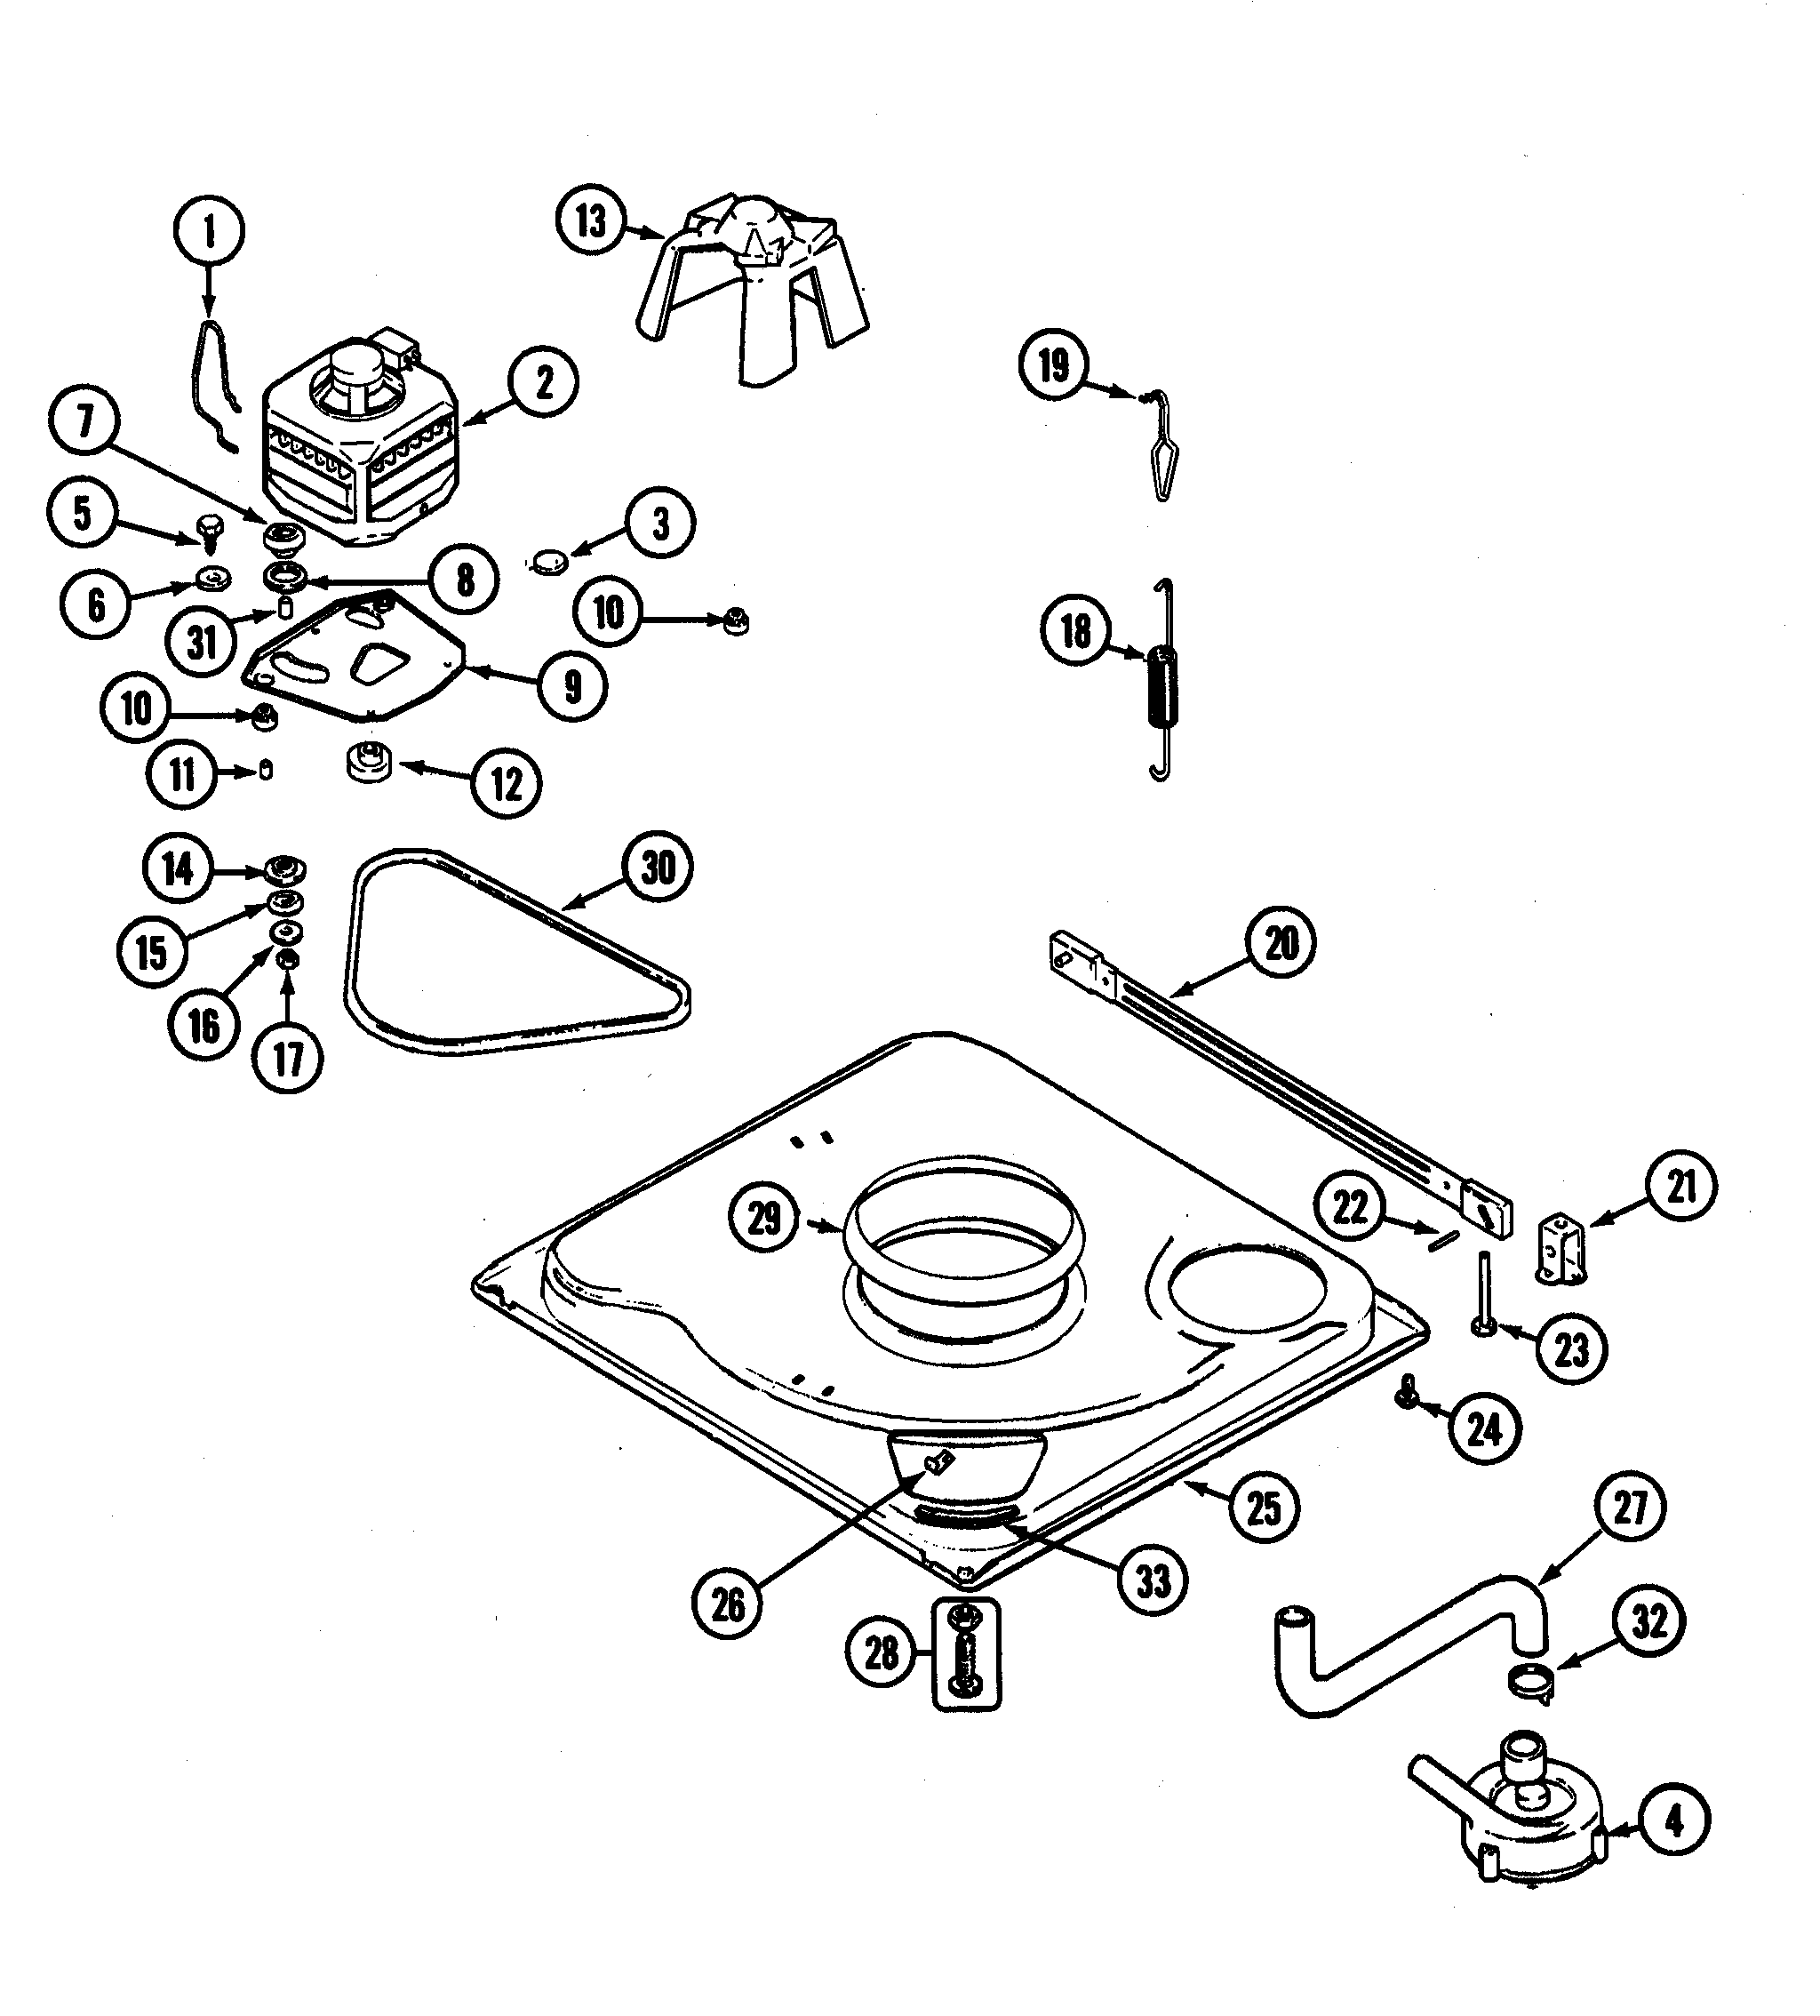 LNC6760B71base maytag washer motor plate 35 2021 for admiral washer motor maytag washer motor wiring diagram at edmiracle.co